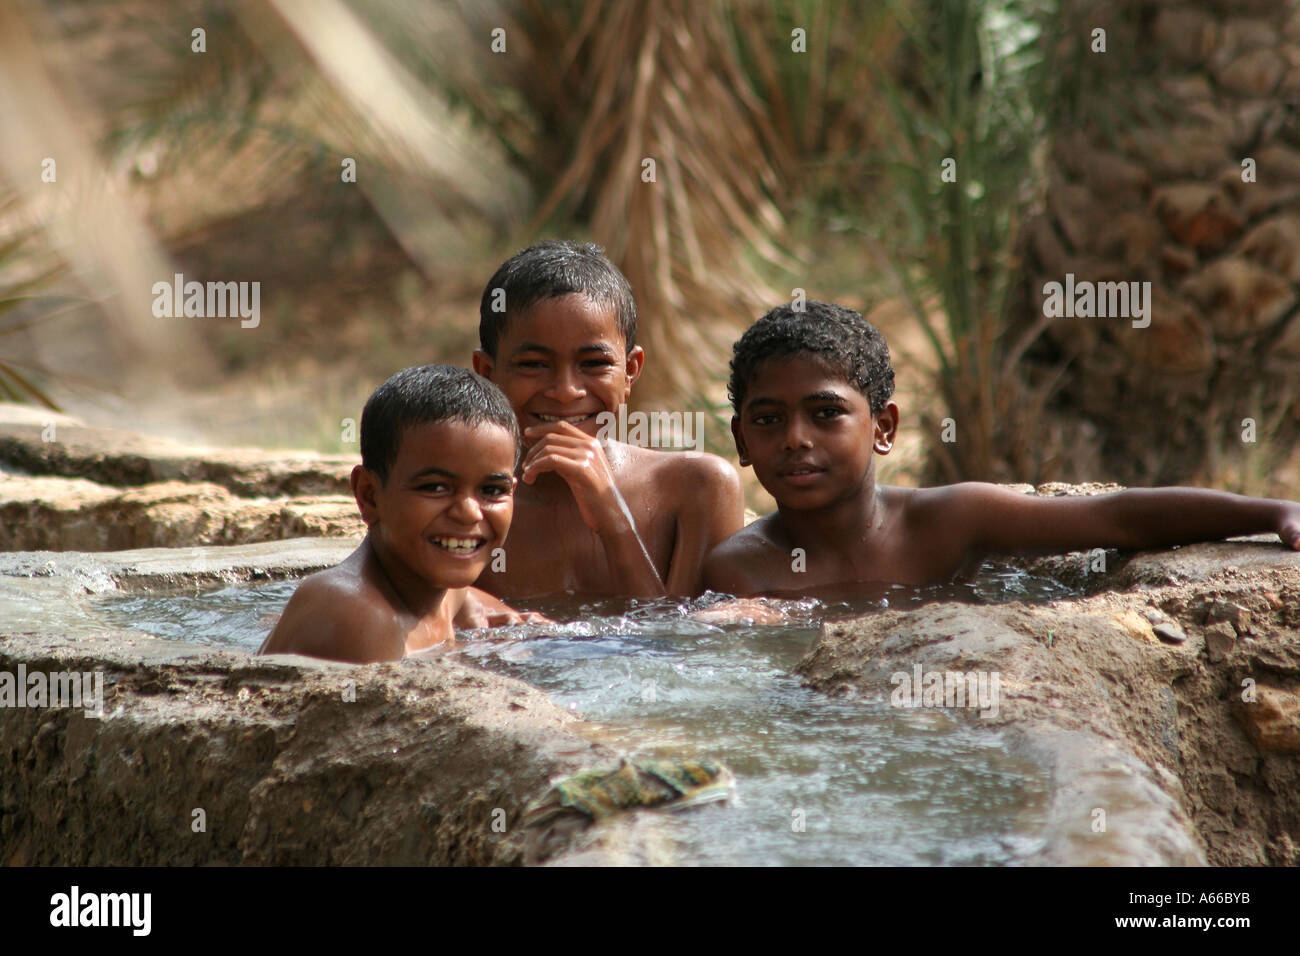 Local boys cooling off in the waters of the falaj or irrigation canal in Sur, Oman - Stock Image